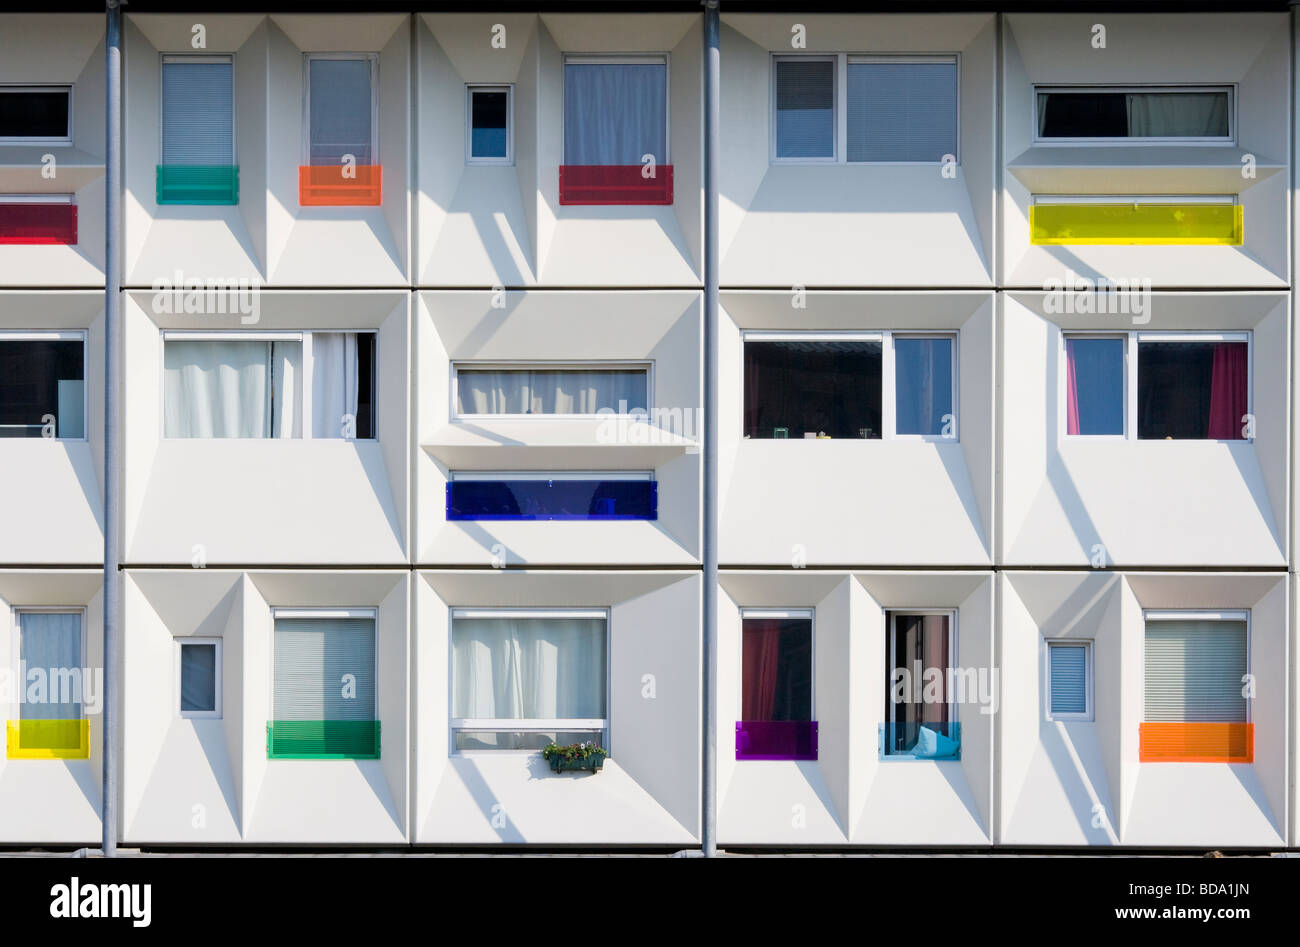 Modern prefab student housing in the Amsterdam harbour, harbor, docklands, using modular cargo shipping containers. Stock Photo